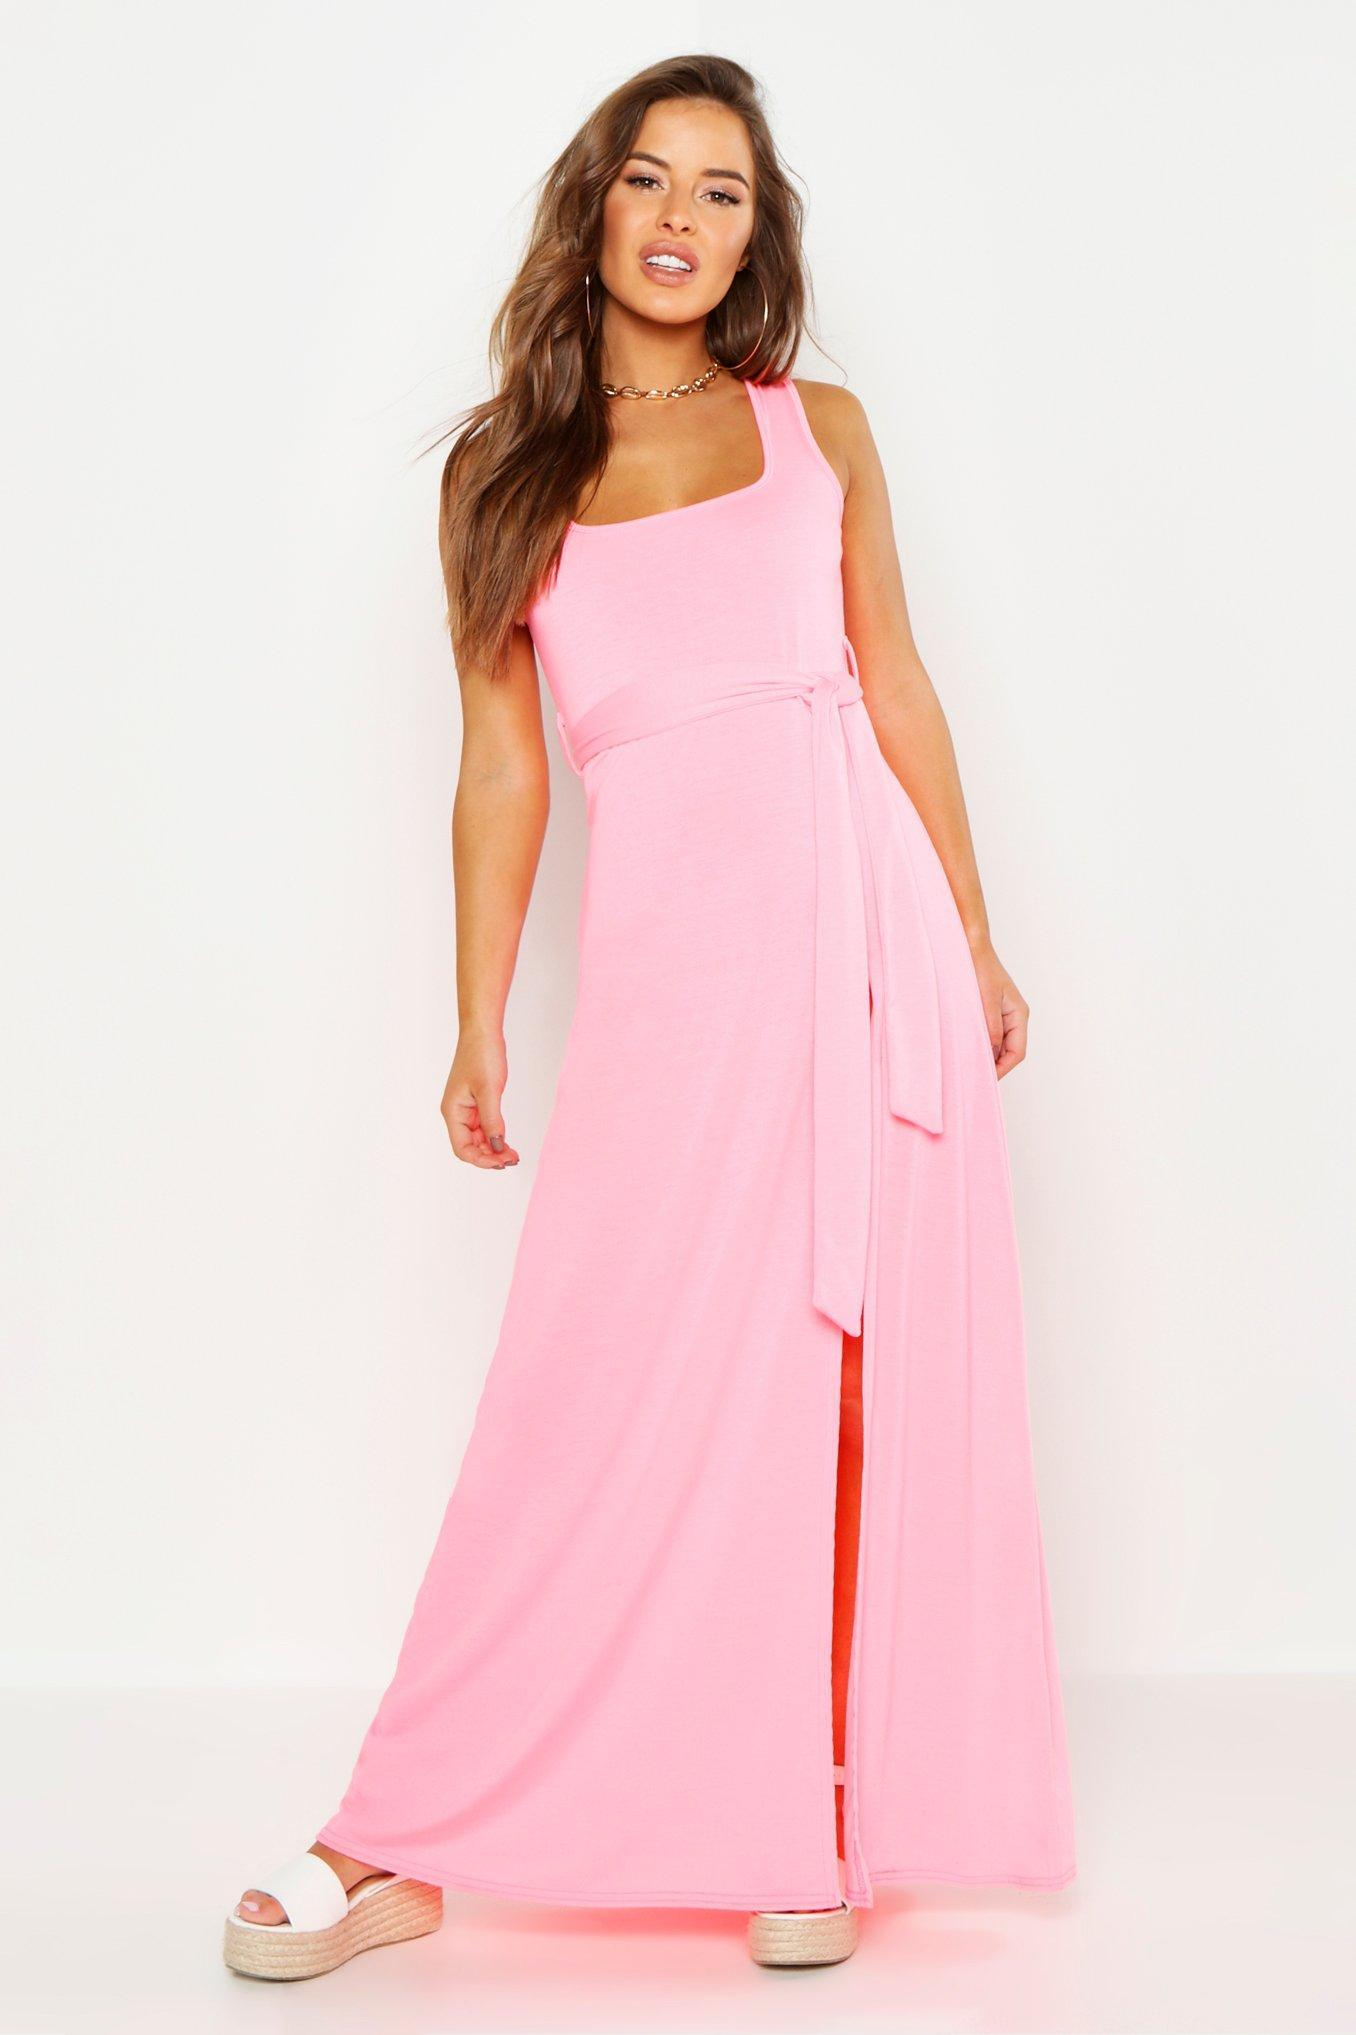 36110a9965810 Boohoo Petite Neon Square Neck Beach Dress in Pink - Lyst